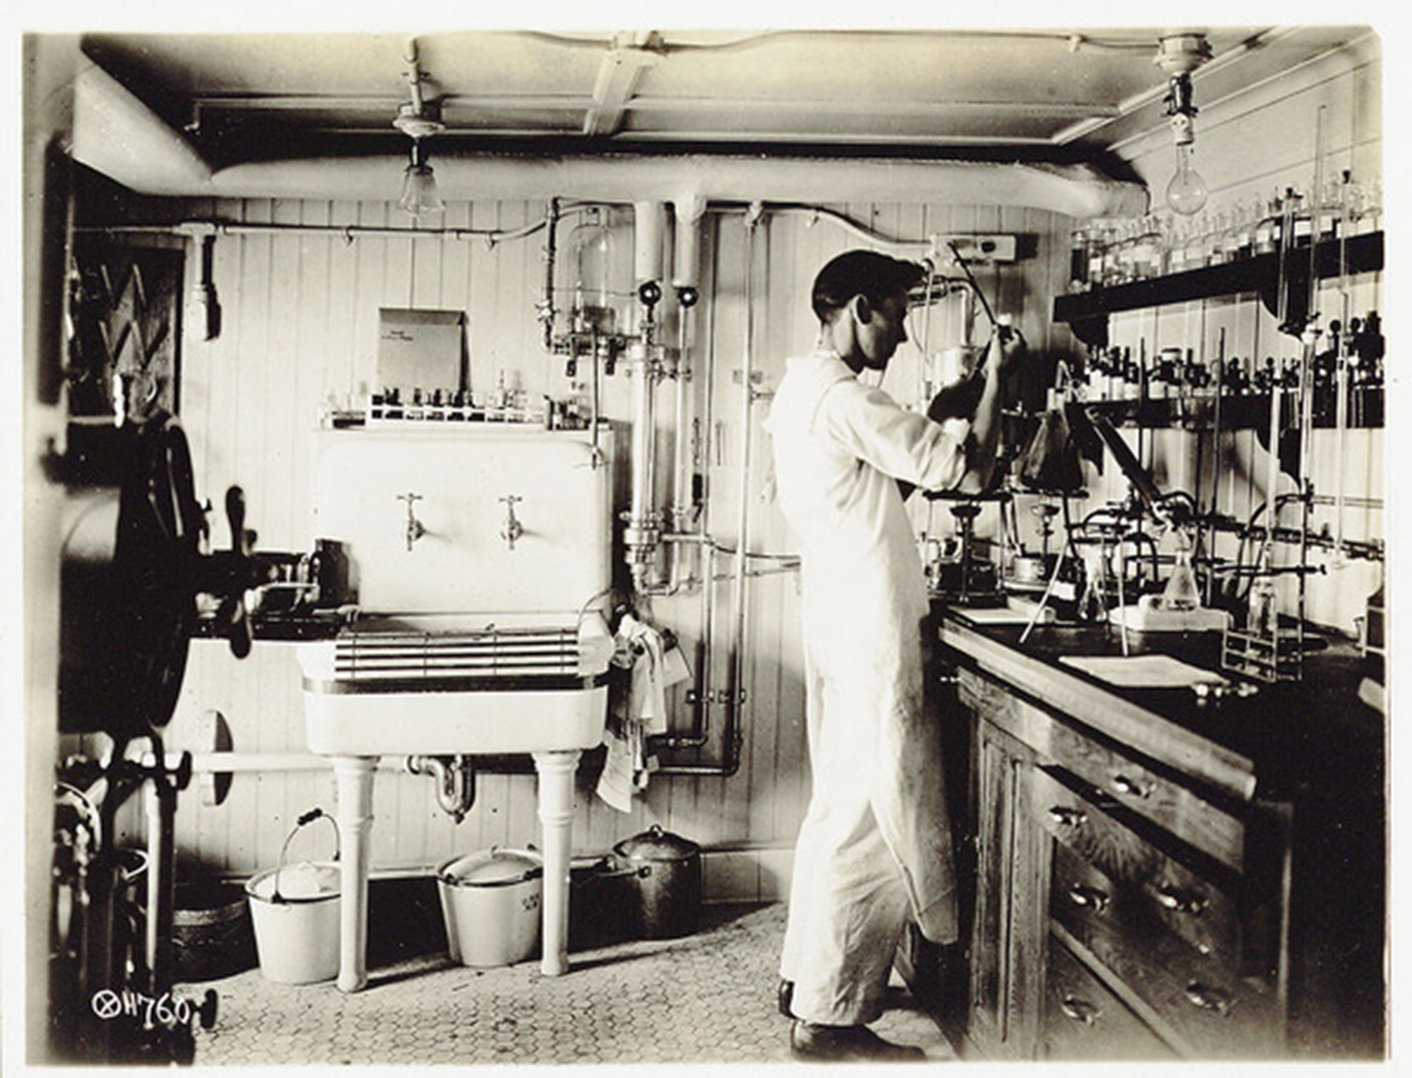 Working in a chemistry lab during the war, Istituto centrale per il catalogo unico , Biblioteca Universitaria Alessandrina, In Copyright